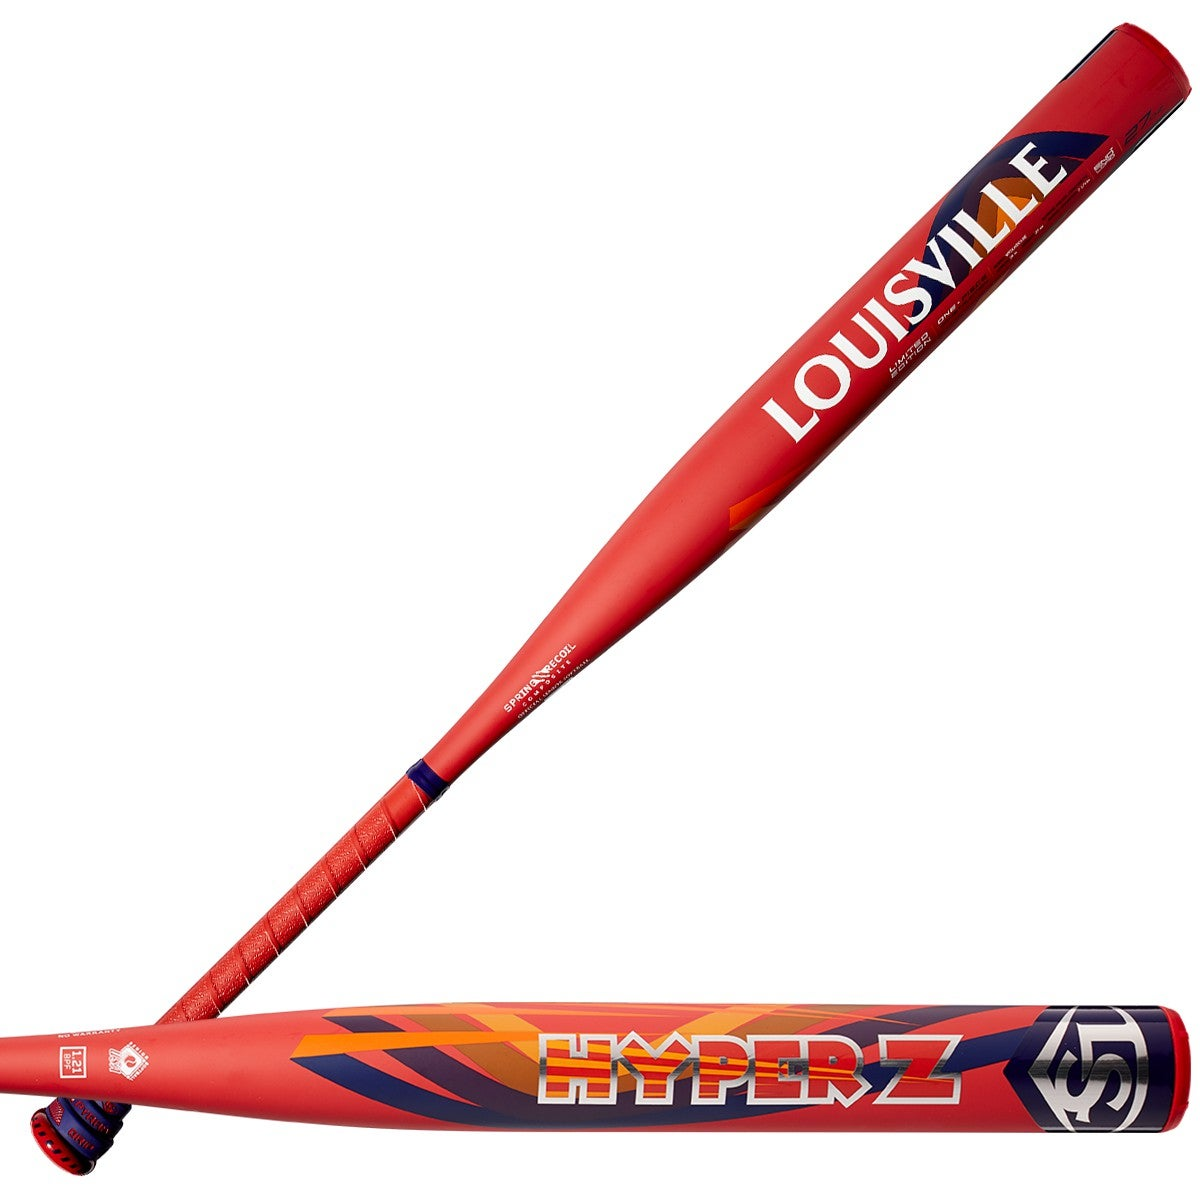 ? 2018 Limited Edition Hyper Z One-Piece Endload Slowpitch Softball Bat